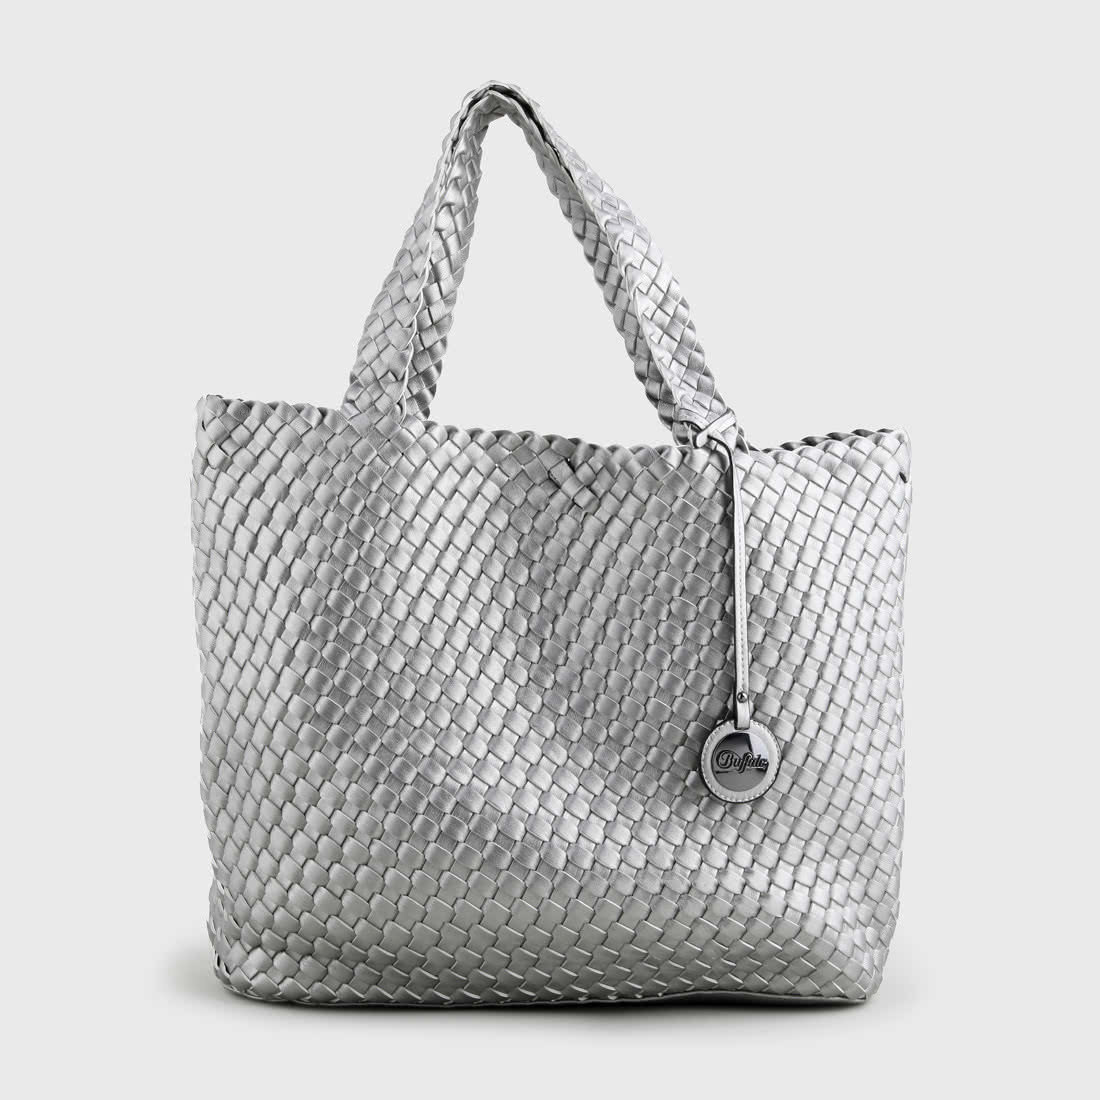 3e44ee5b9b83c Buffalo Shopper 2 in 1 silver buy online in BUFFALO Online-Shop ...